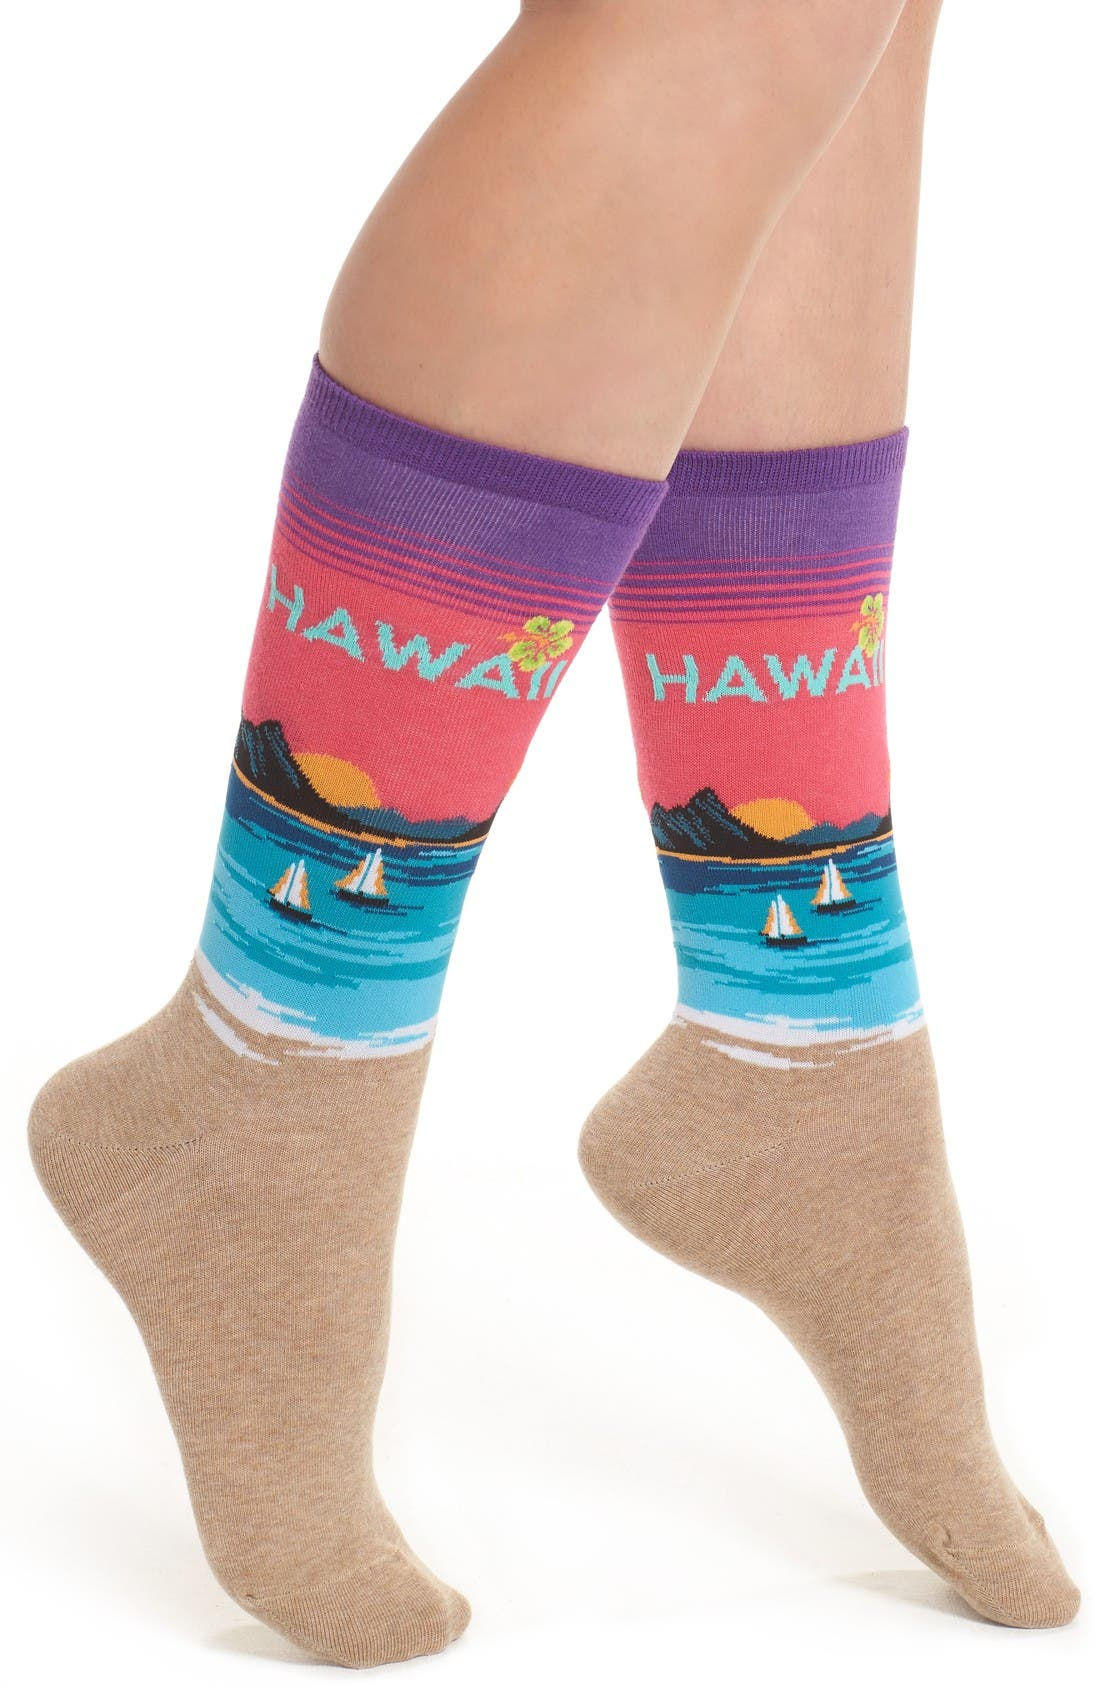 Hot Sox Hawaii Crew Socks (3 for $15)